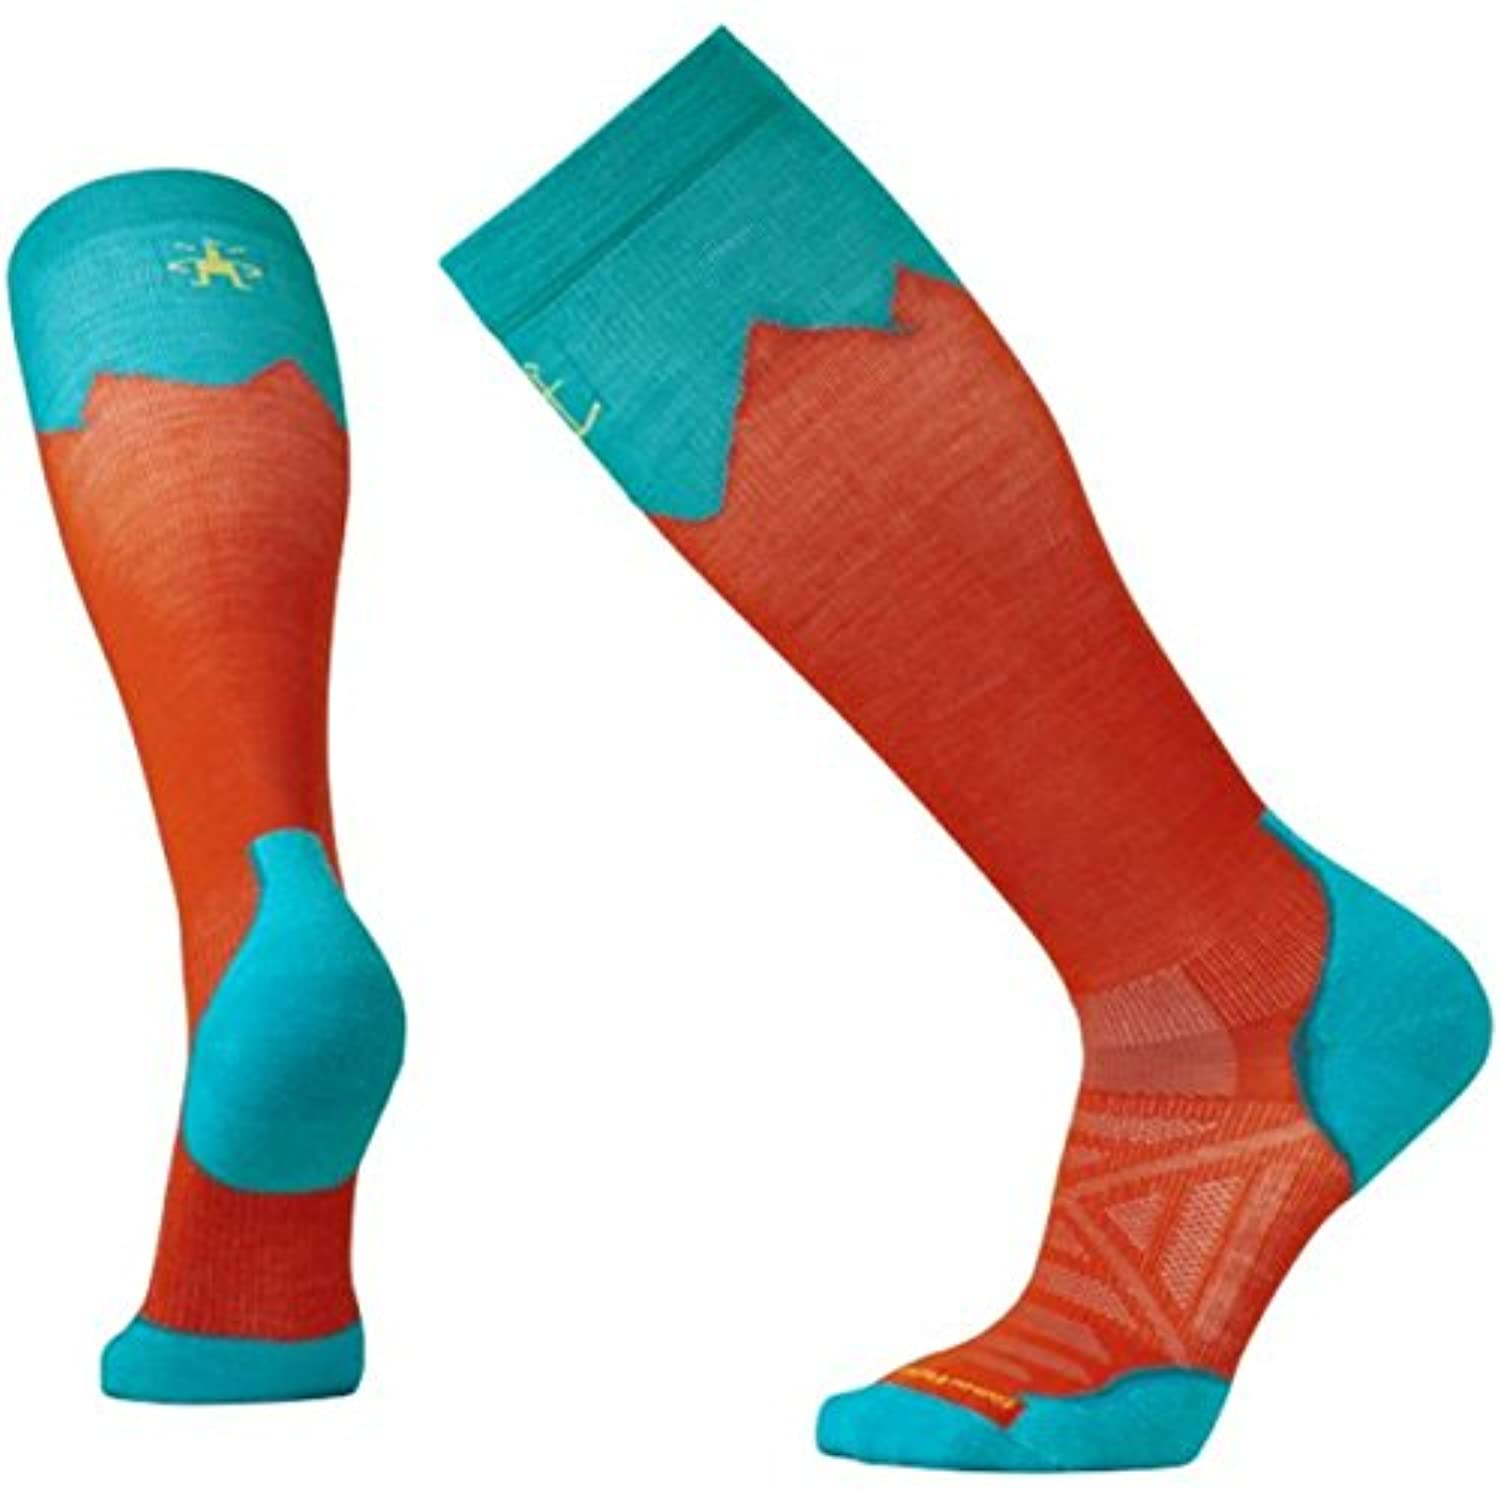 SmartWool Mountaineer Socks